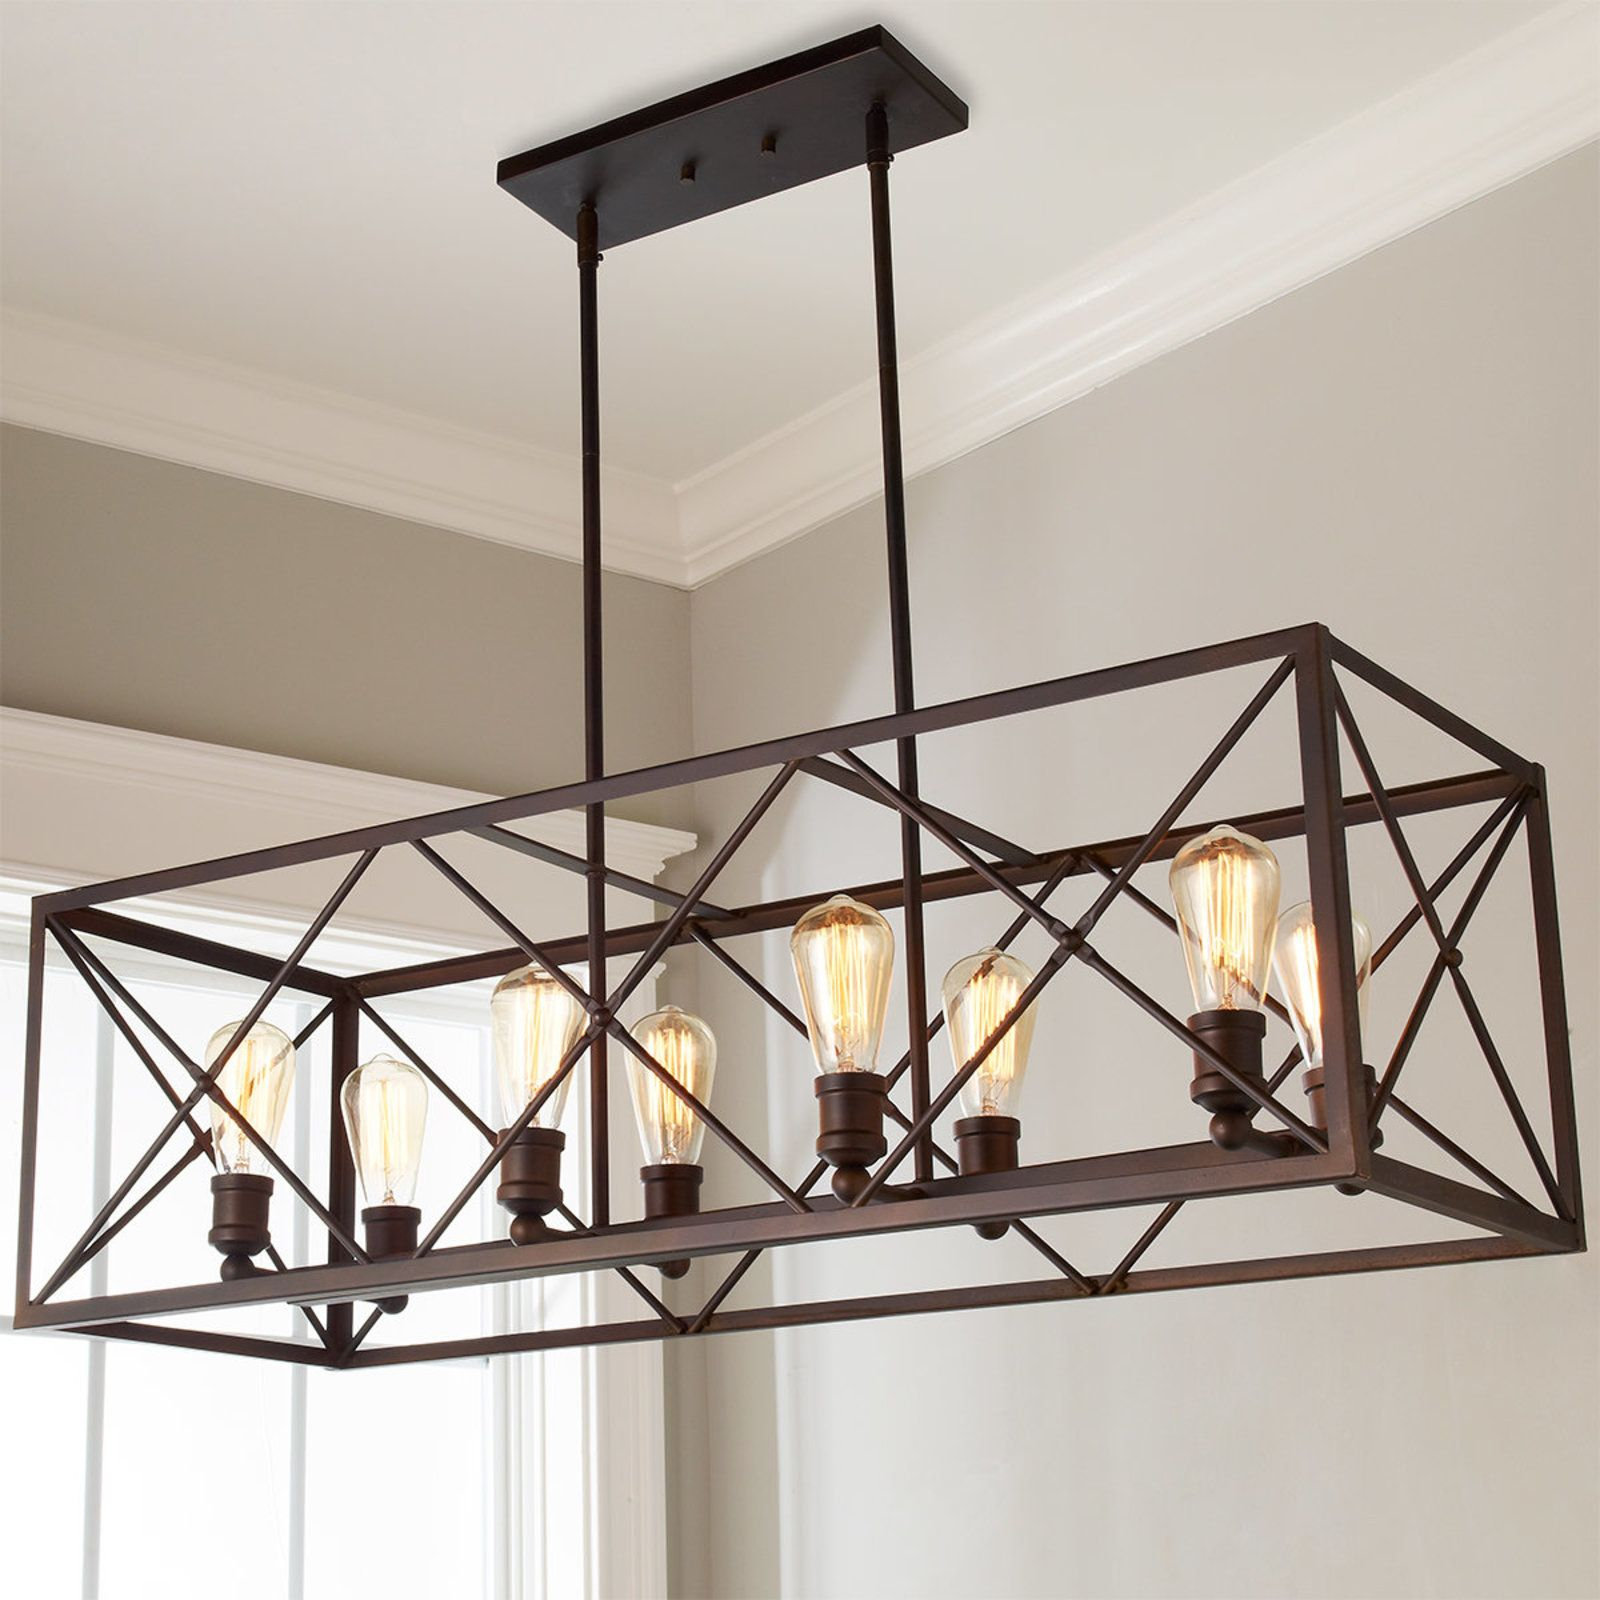 Industrial Cross Framed Box Island Chandelier | Lighting With Regard To Ellenton 4 Light Rectangle Chandeliers (View 15 of 30)